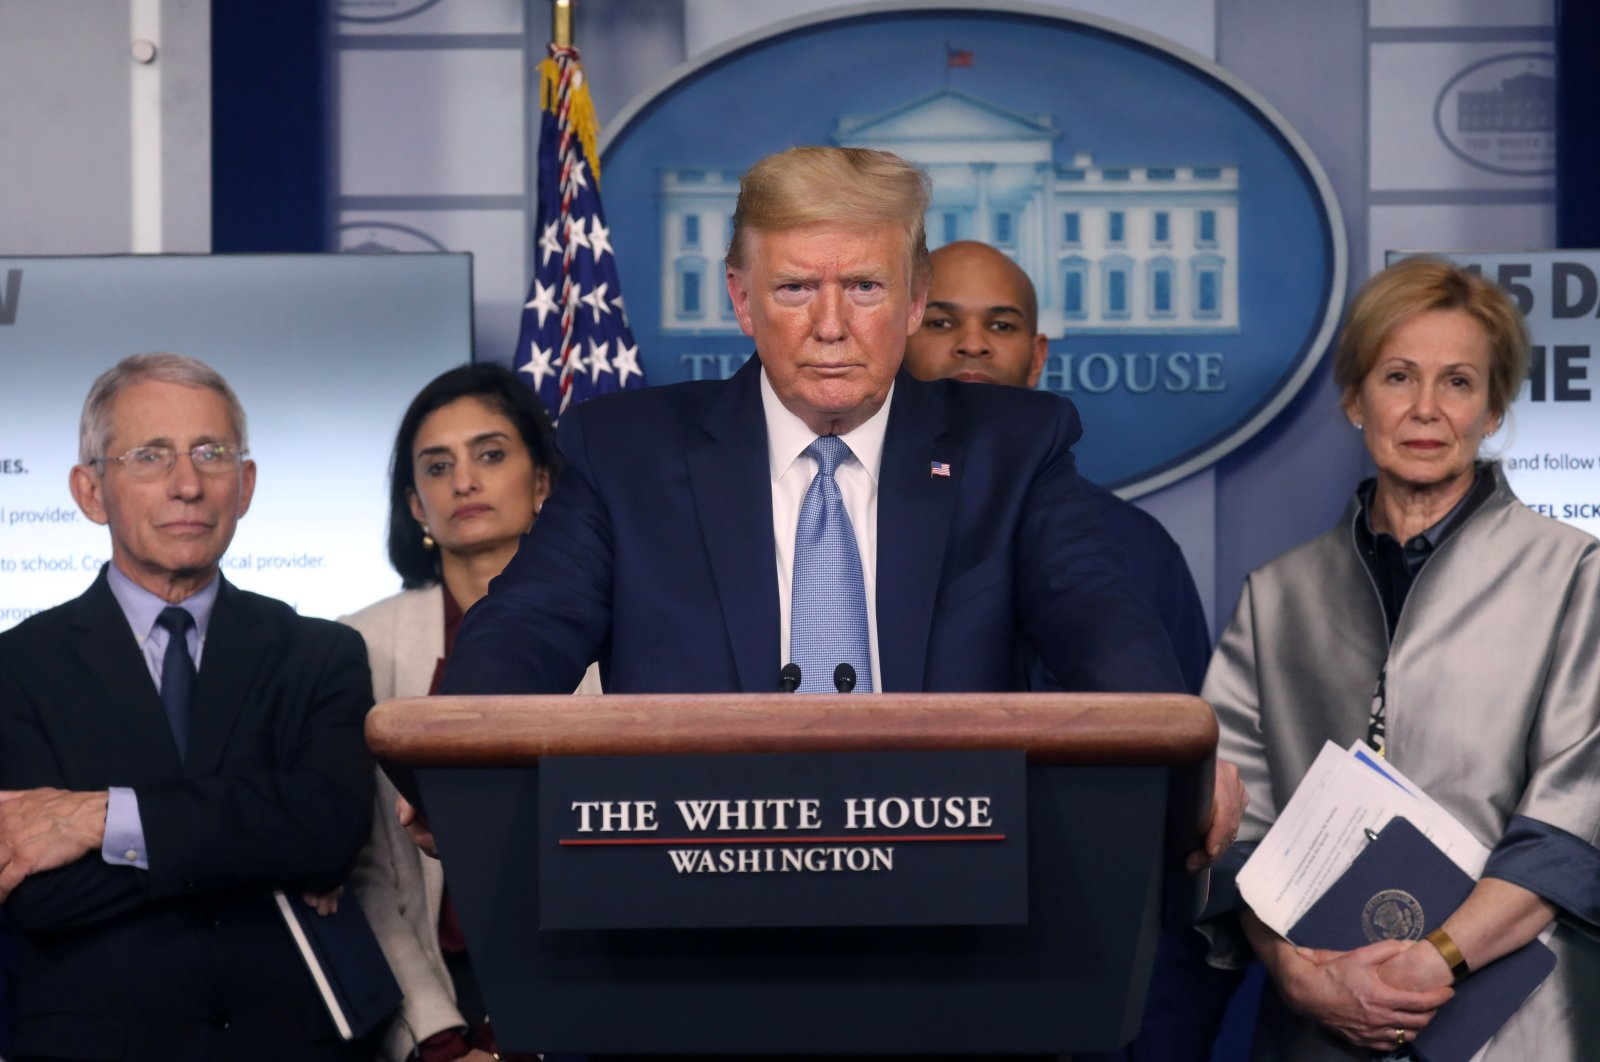 U.S. President Donald Trump holds a news briefing on the coronavirus outbreak at the White House, Washington, U.S., Monday, March 16, 2020. (REUTERS Photo)